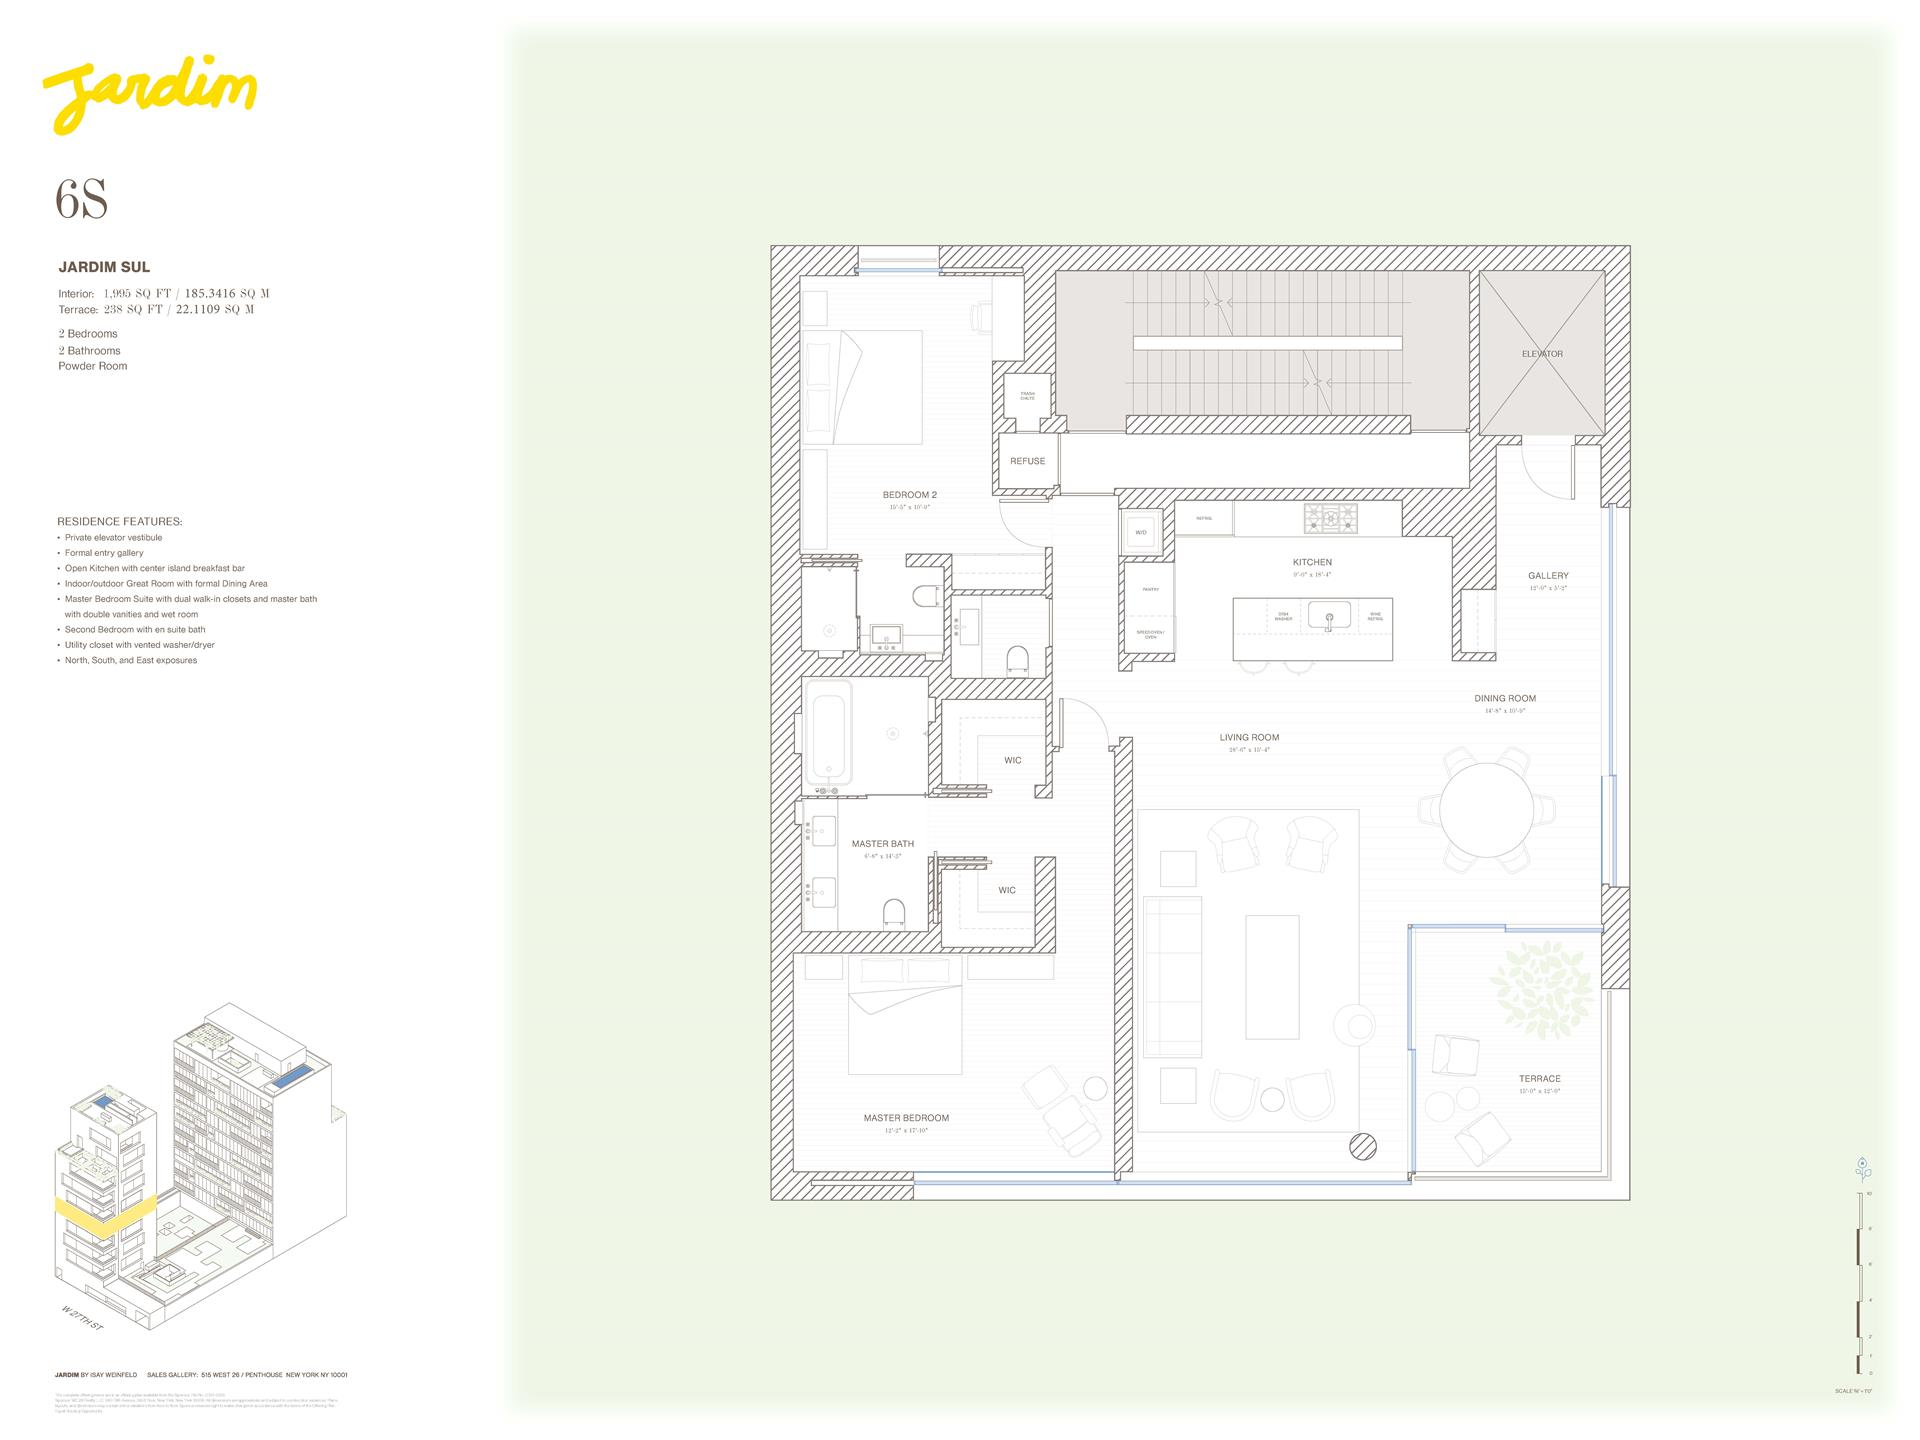 Floor plan of Jardim, 527 West 27th St, 6S - Chelsea, New York